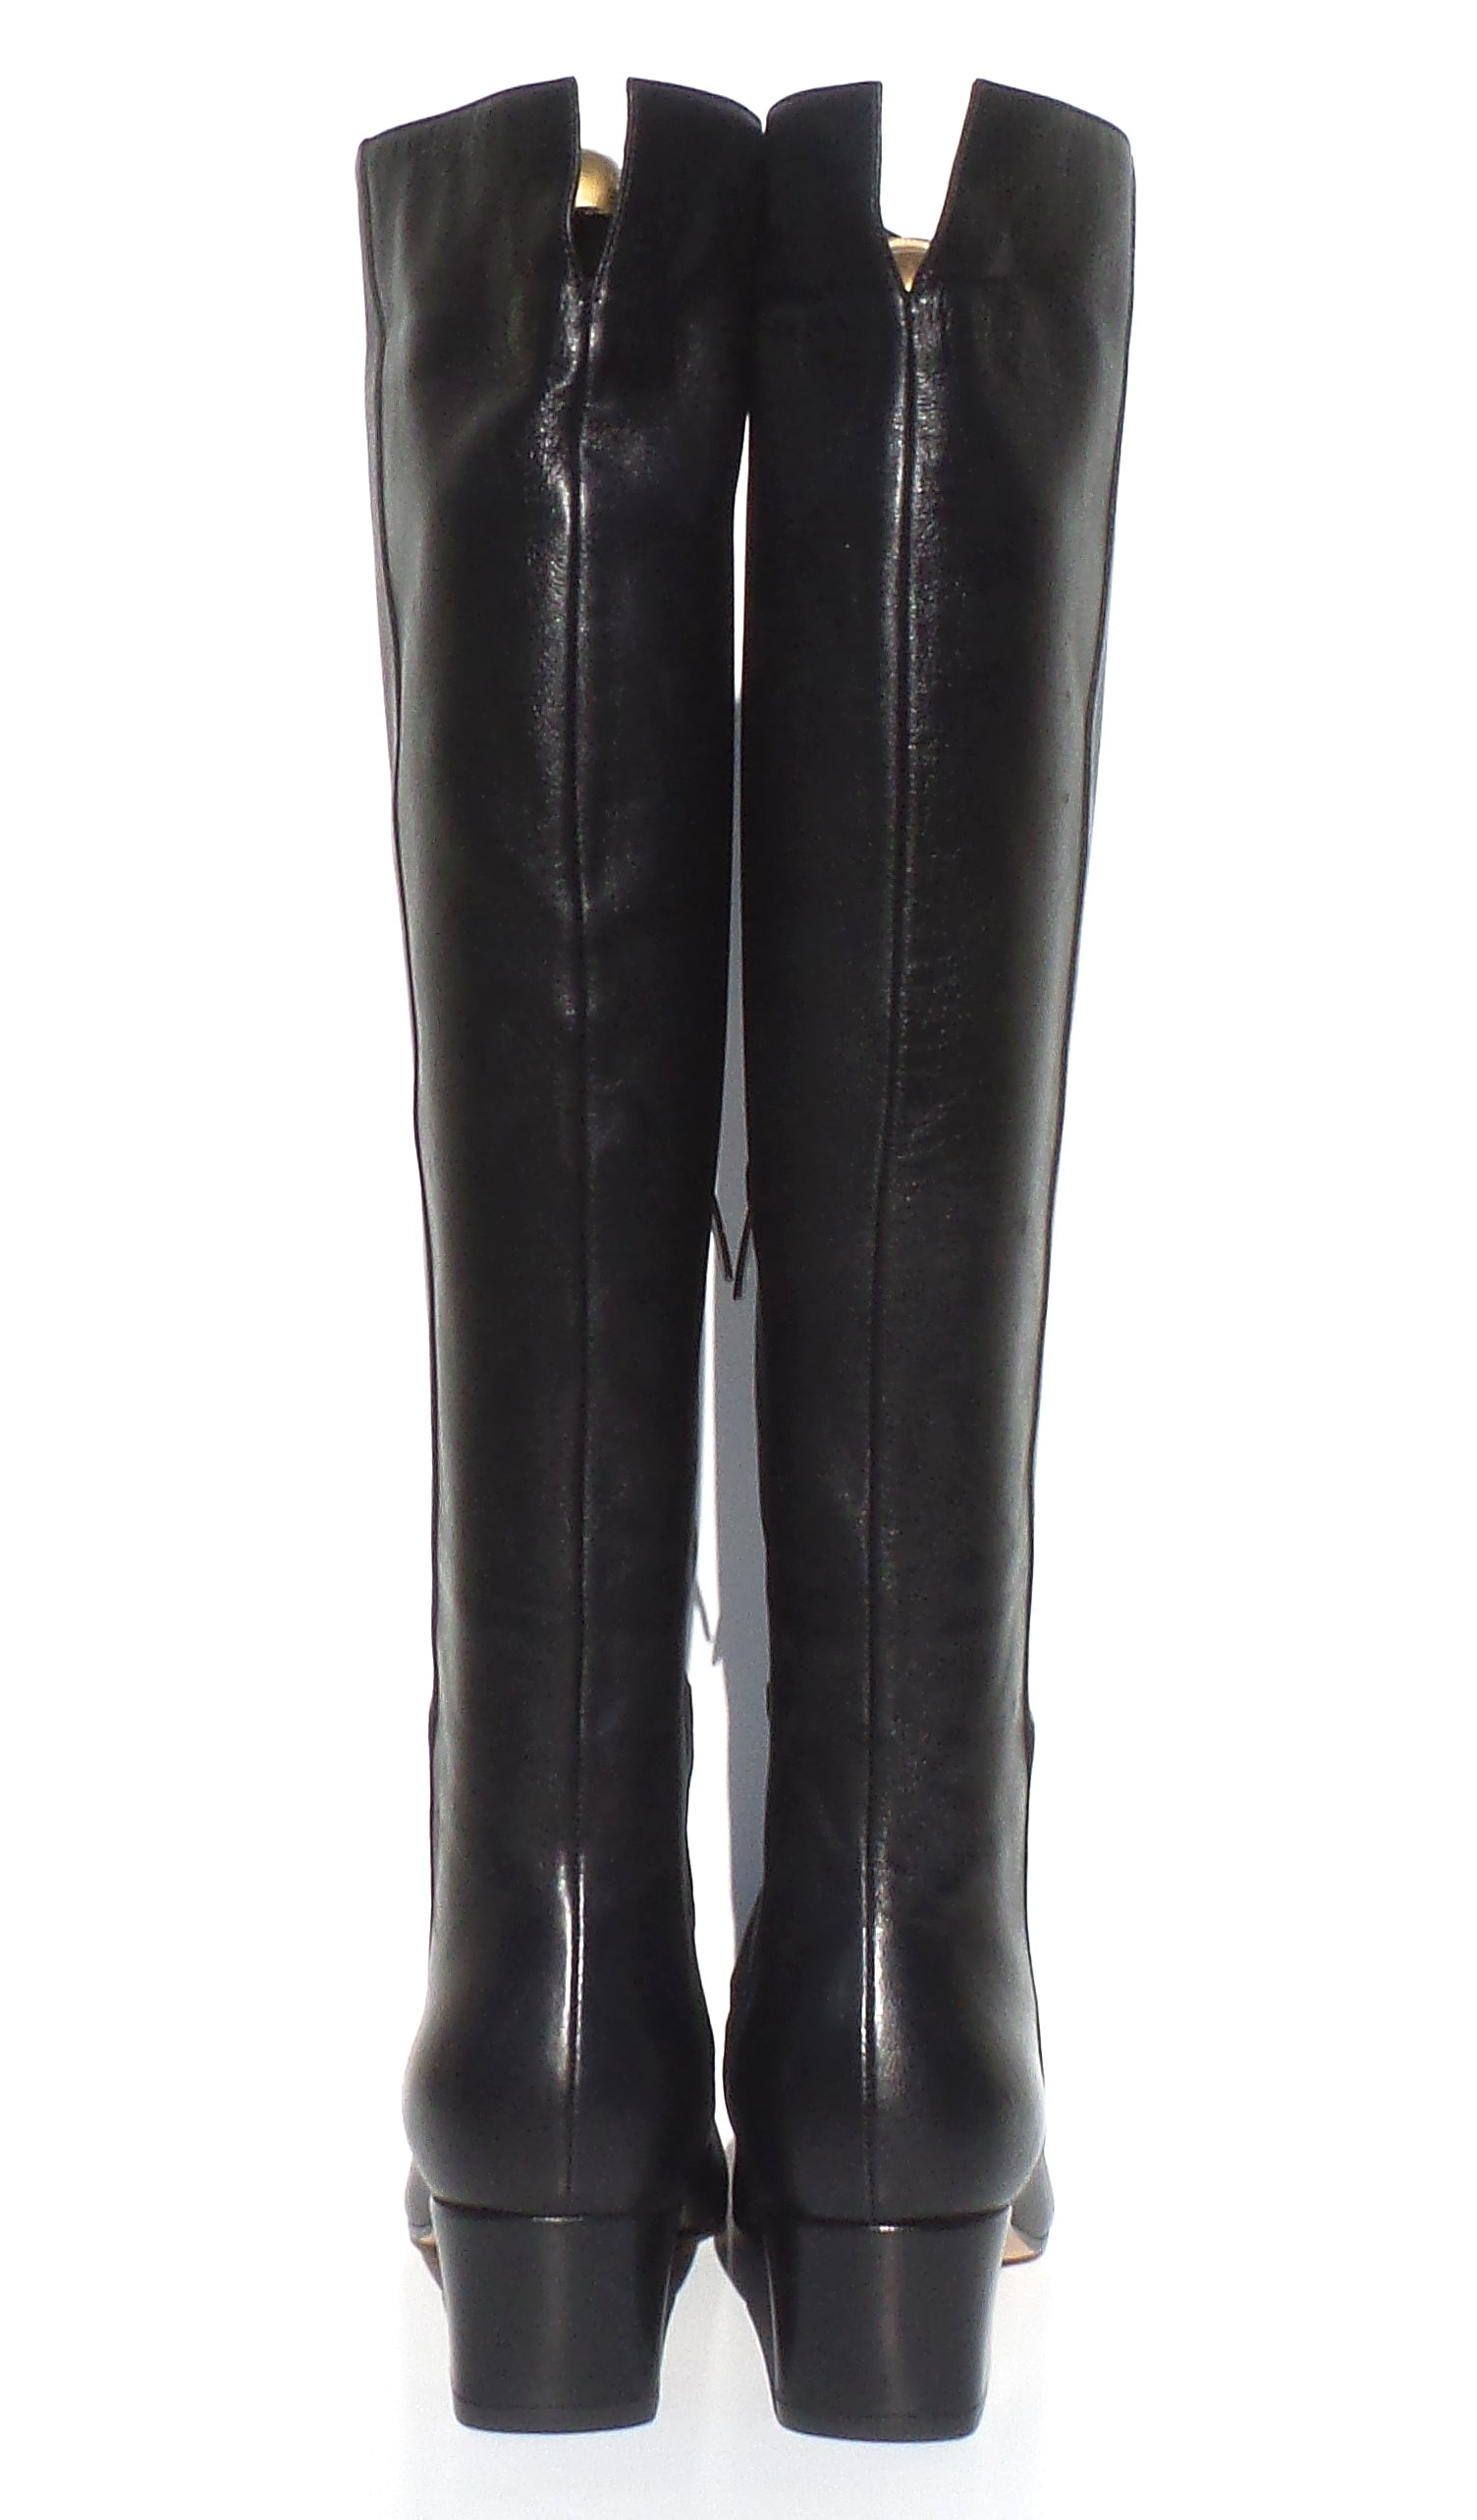 4f38b5c52 'Sold' GIANVITO ROSSI Black Leather Square Toe Mid Block Heel Tall Boots  36.5 NWD. '